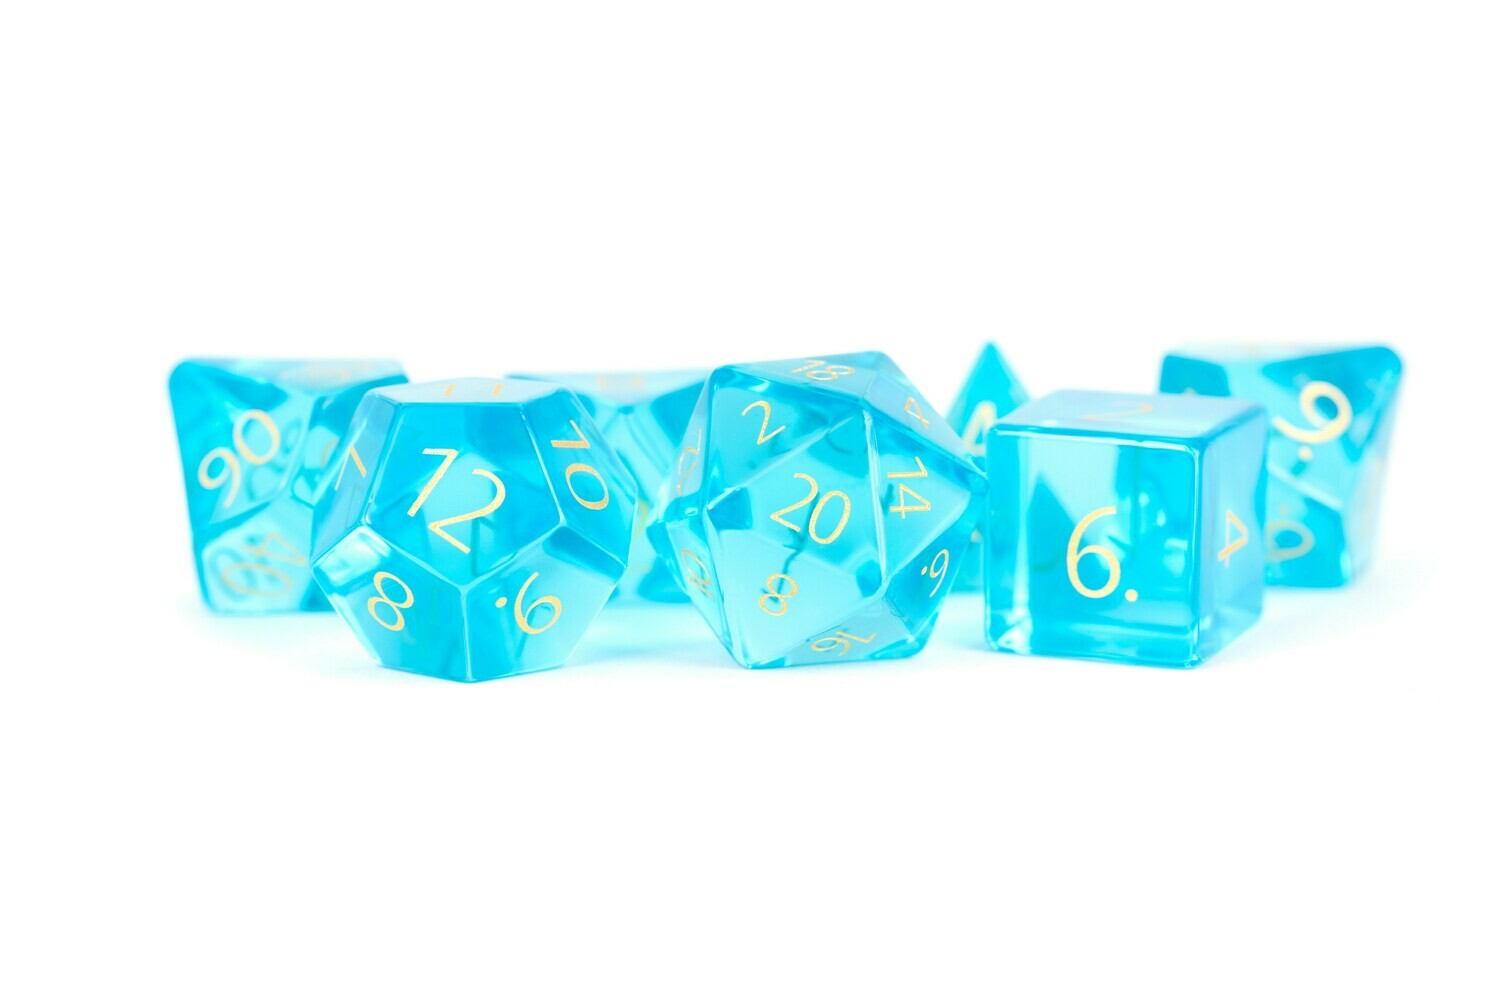 Zircon Glass Birthstone Dice: December- Topaz